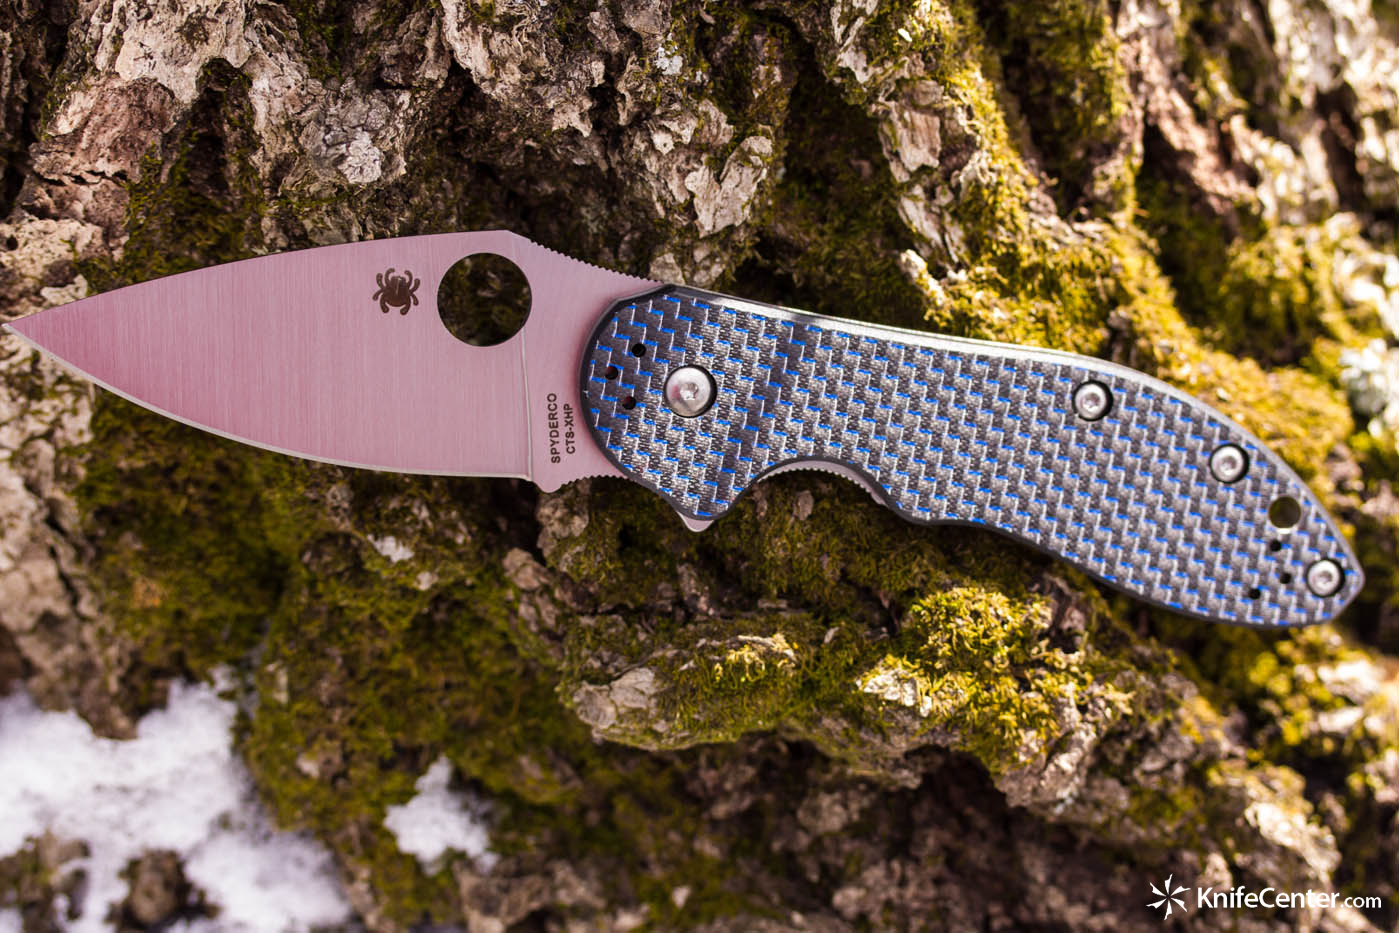 Spyderco C172CFBLTIP Domino Folding Knife